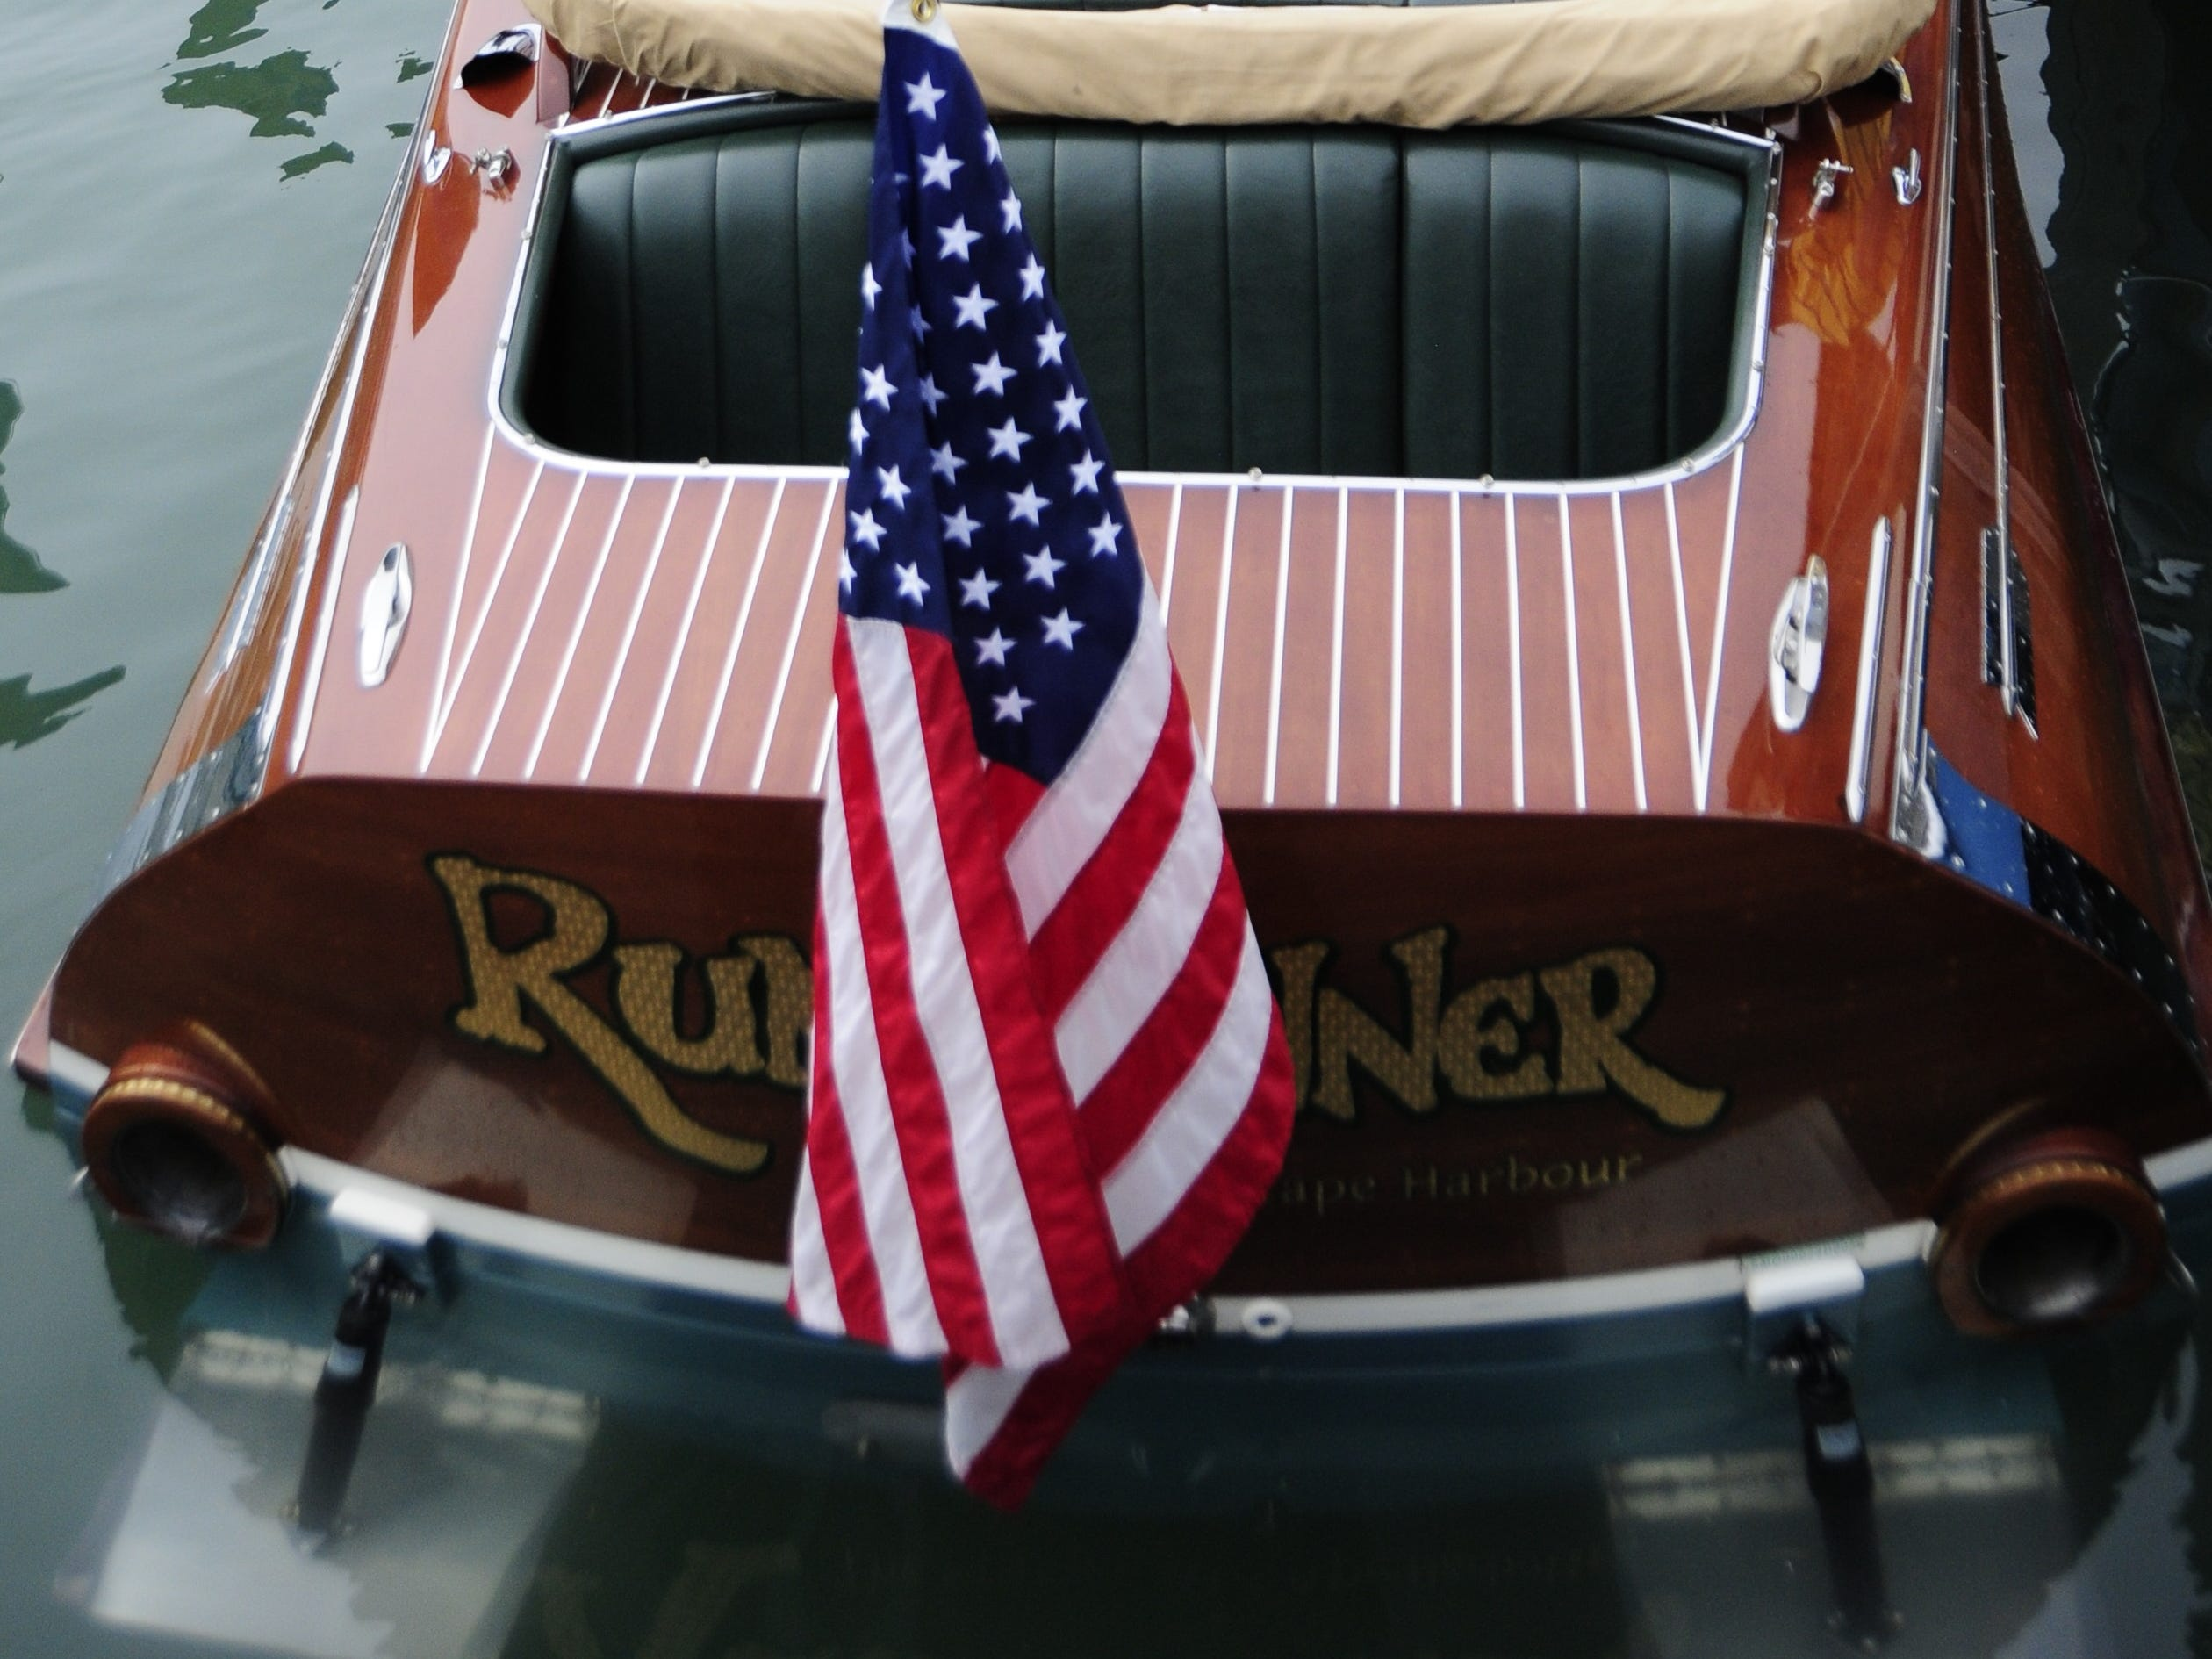 The Rumrunner came from Cape Coral, Floriday to the Antique and Classic Boat Society International Boat Show.